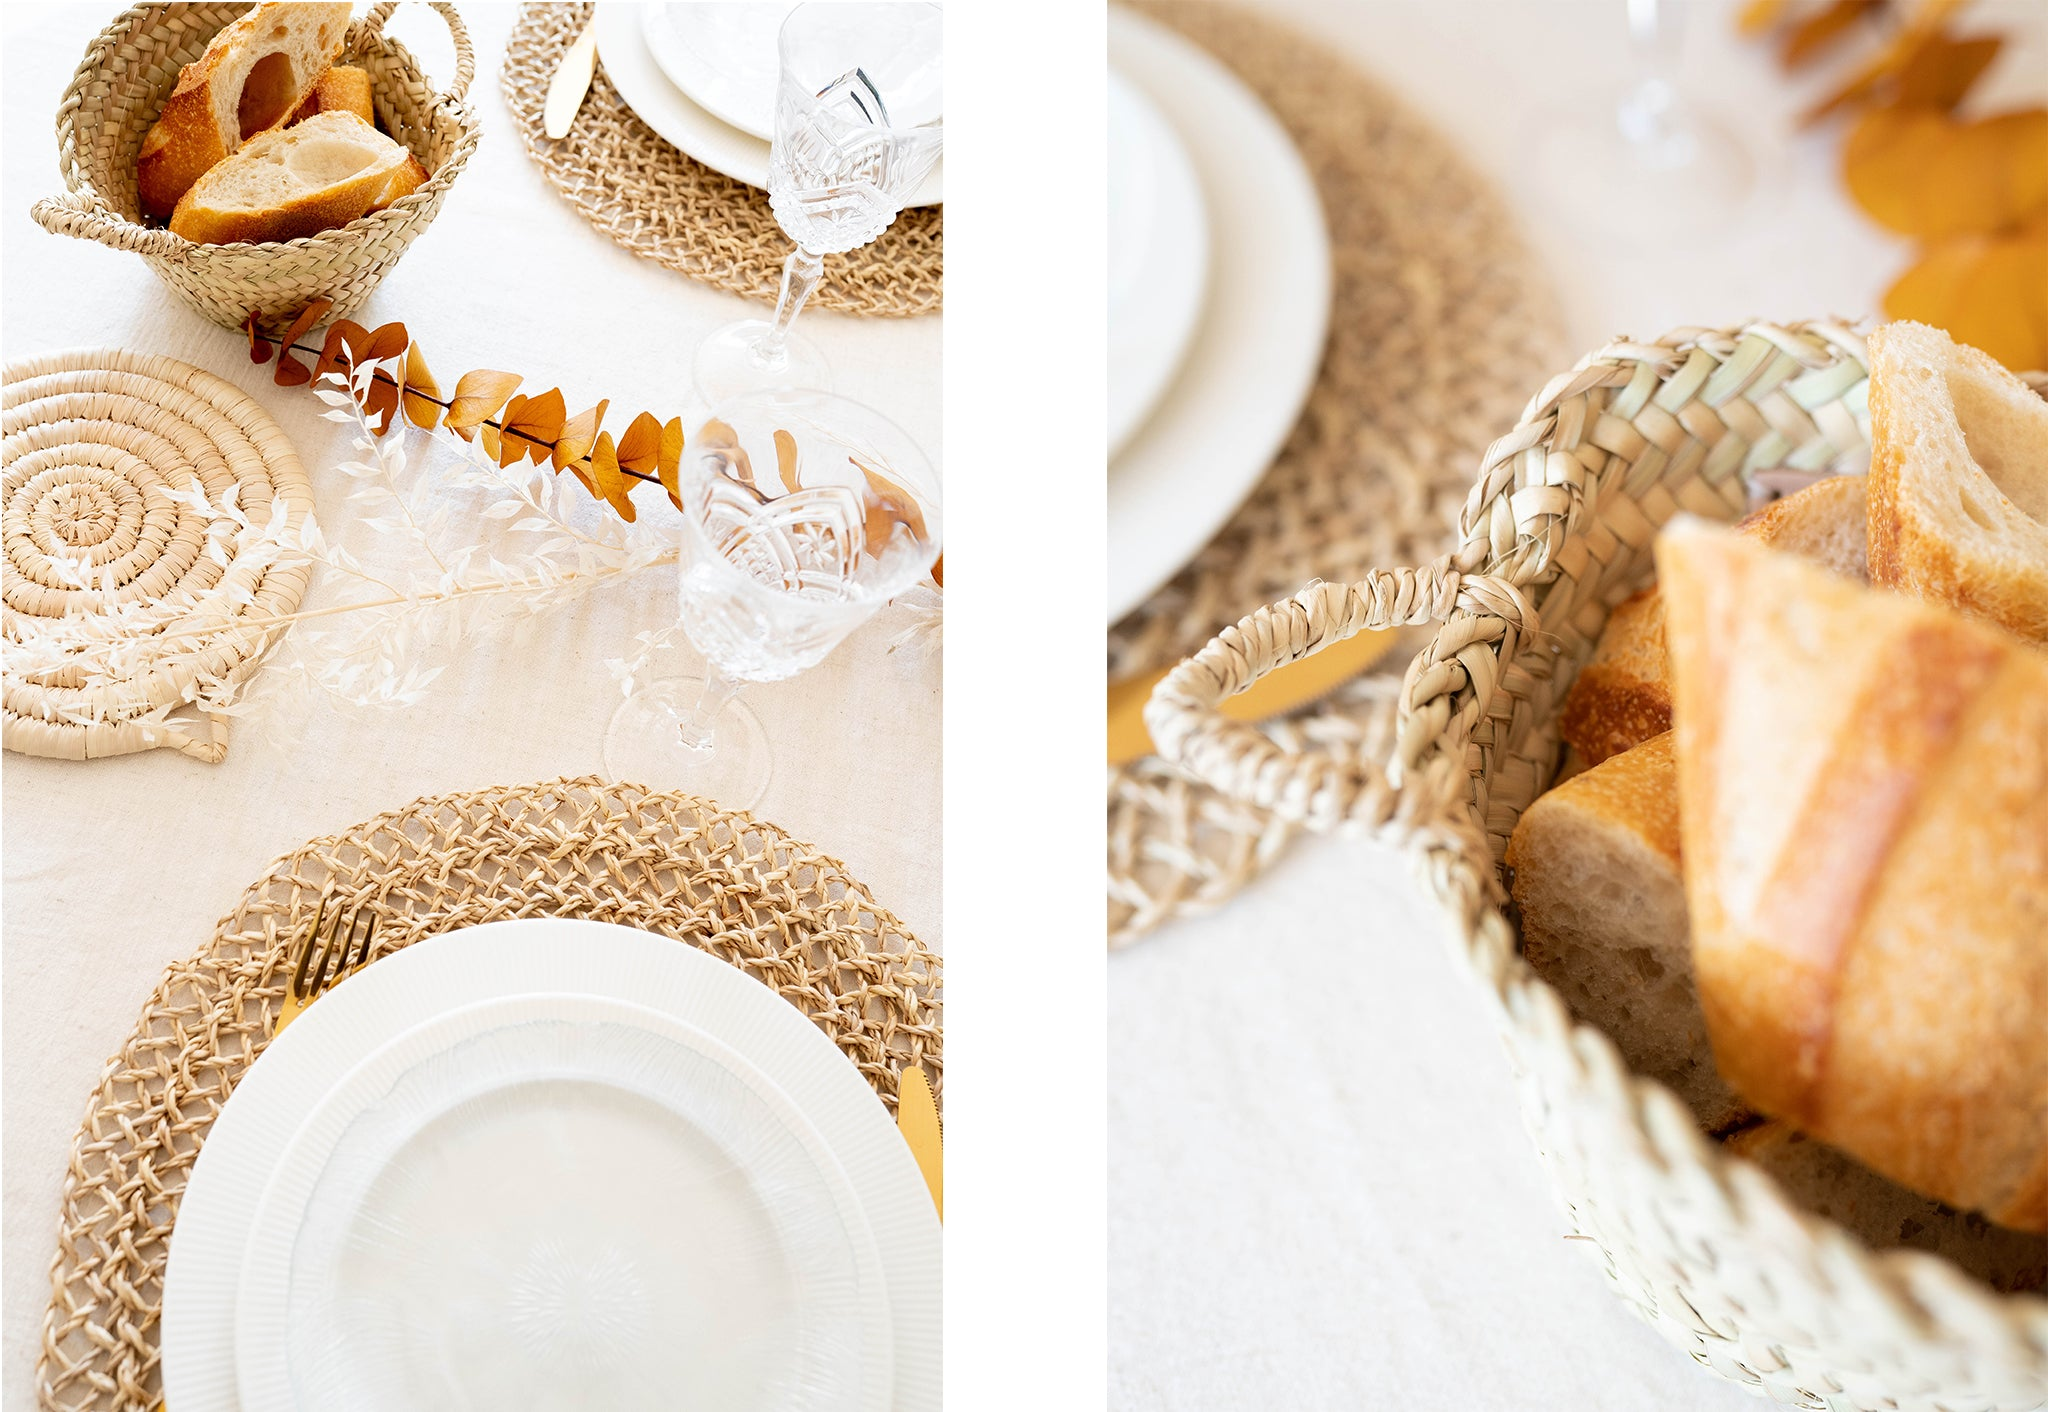 Straw accessories on a thanksgiving table presenting dish and bread